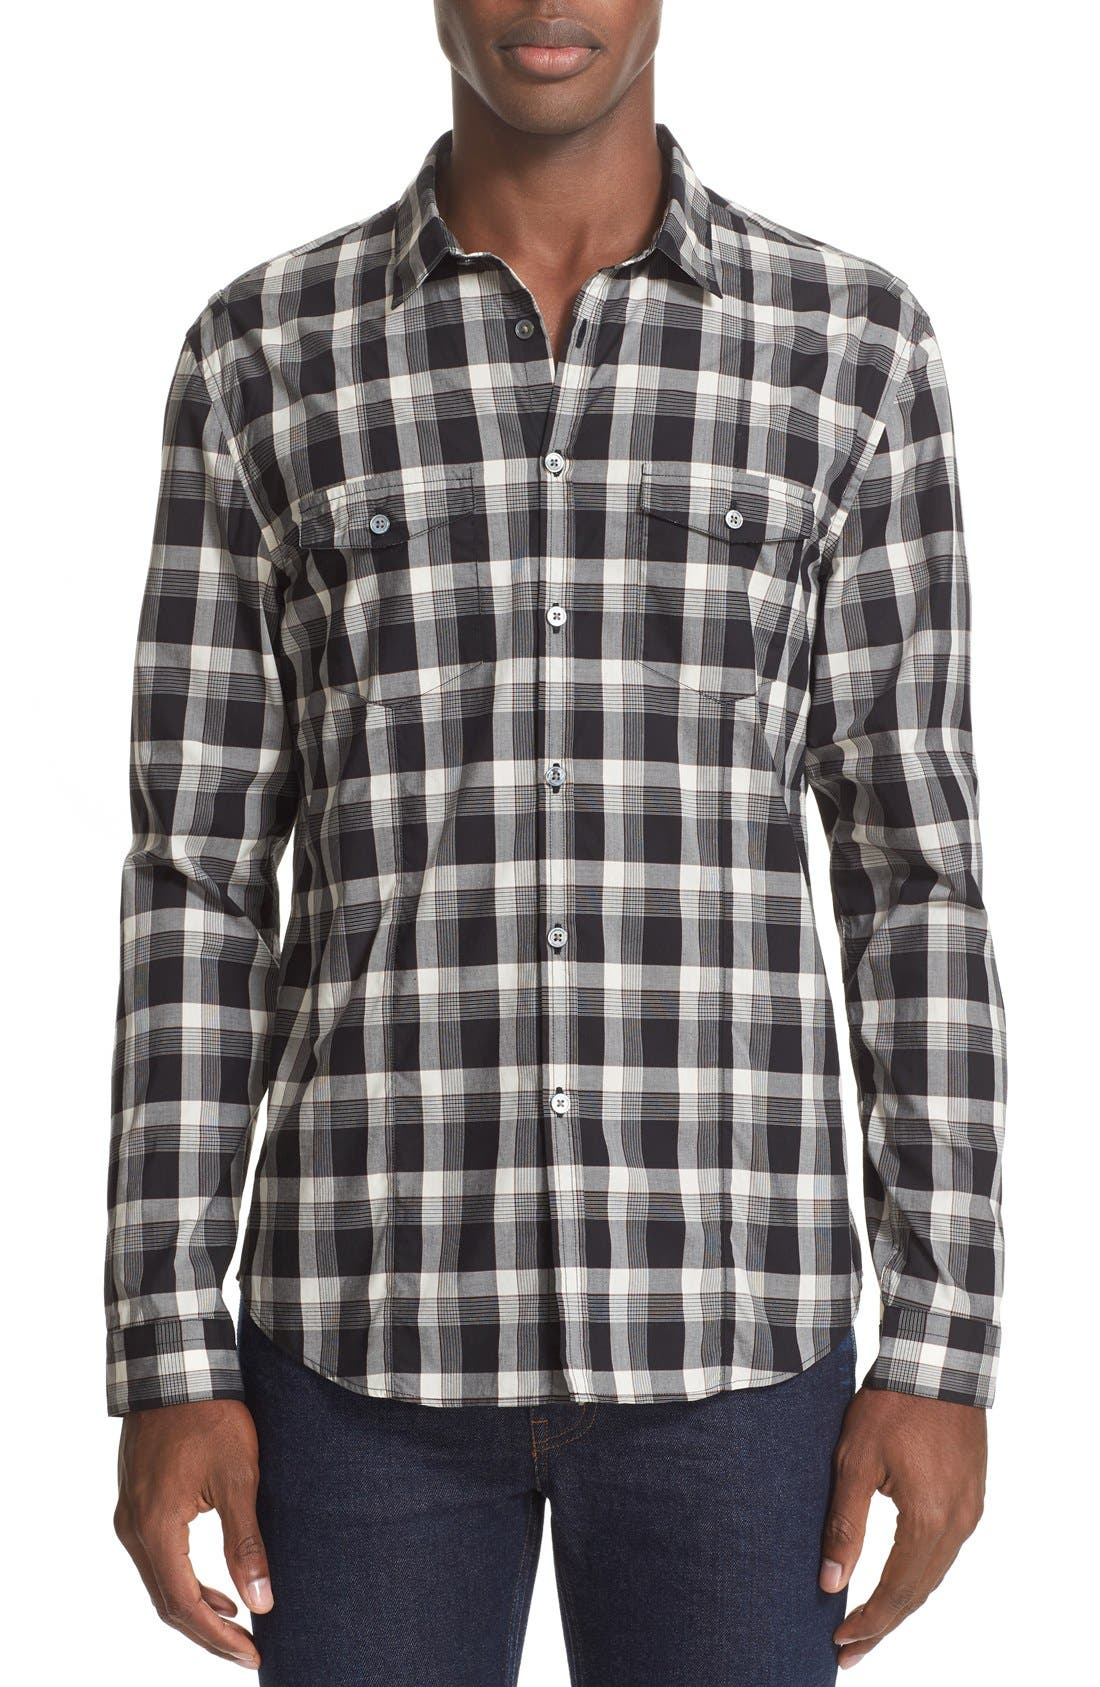 Alternate Image 1 Selected - John Varvatos Collection Slim Fit Plaid Military Shirt